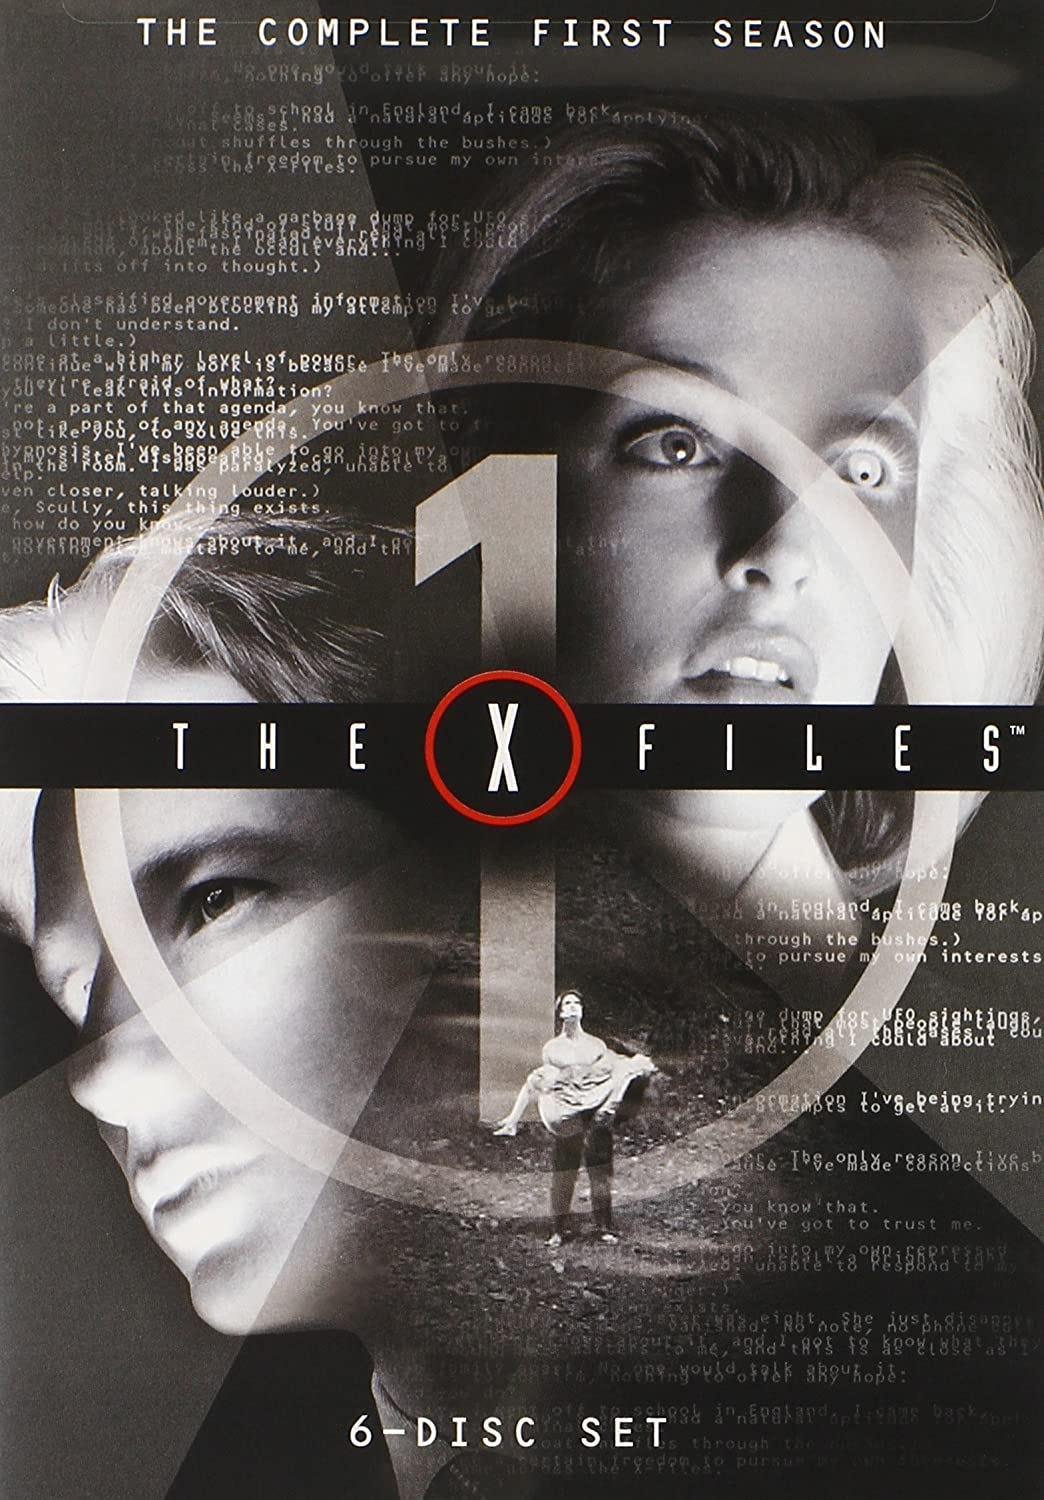 Amazon.com: The X-Files: Season 1: David Duchovny, Gillian ...